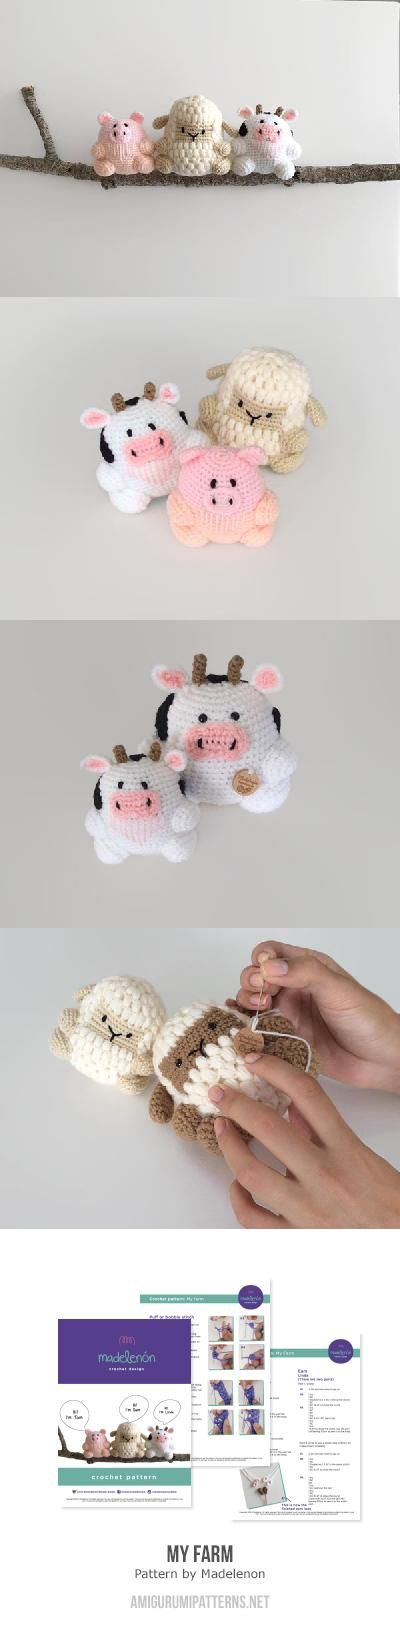 My farm amigurumi pattern by Madelenon